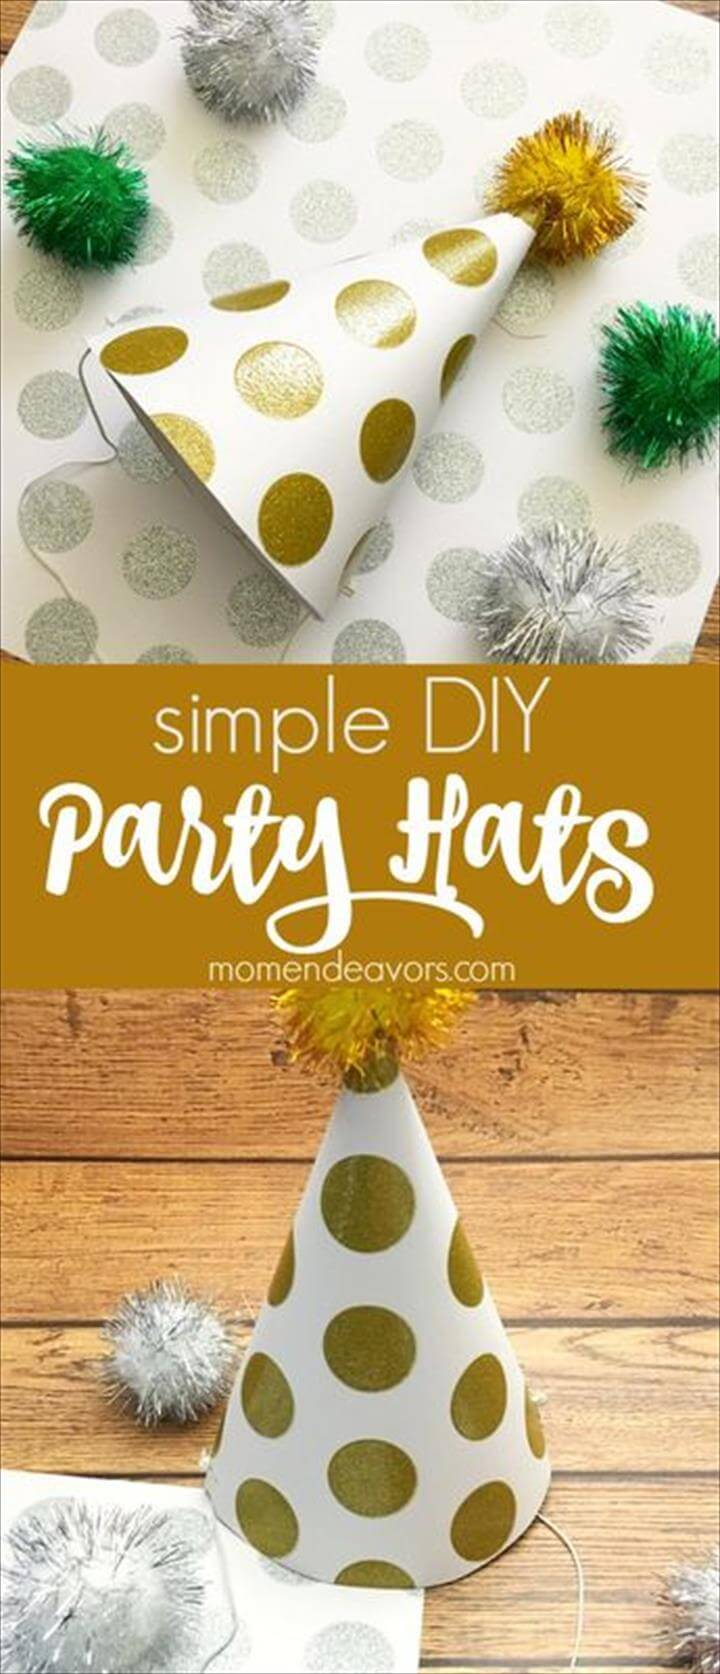 Printable Paper New Year's Eve Hats, Simple DIY Party Hats - perfect for New Year's Eve, birthday parties, and more